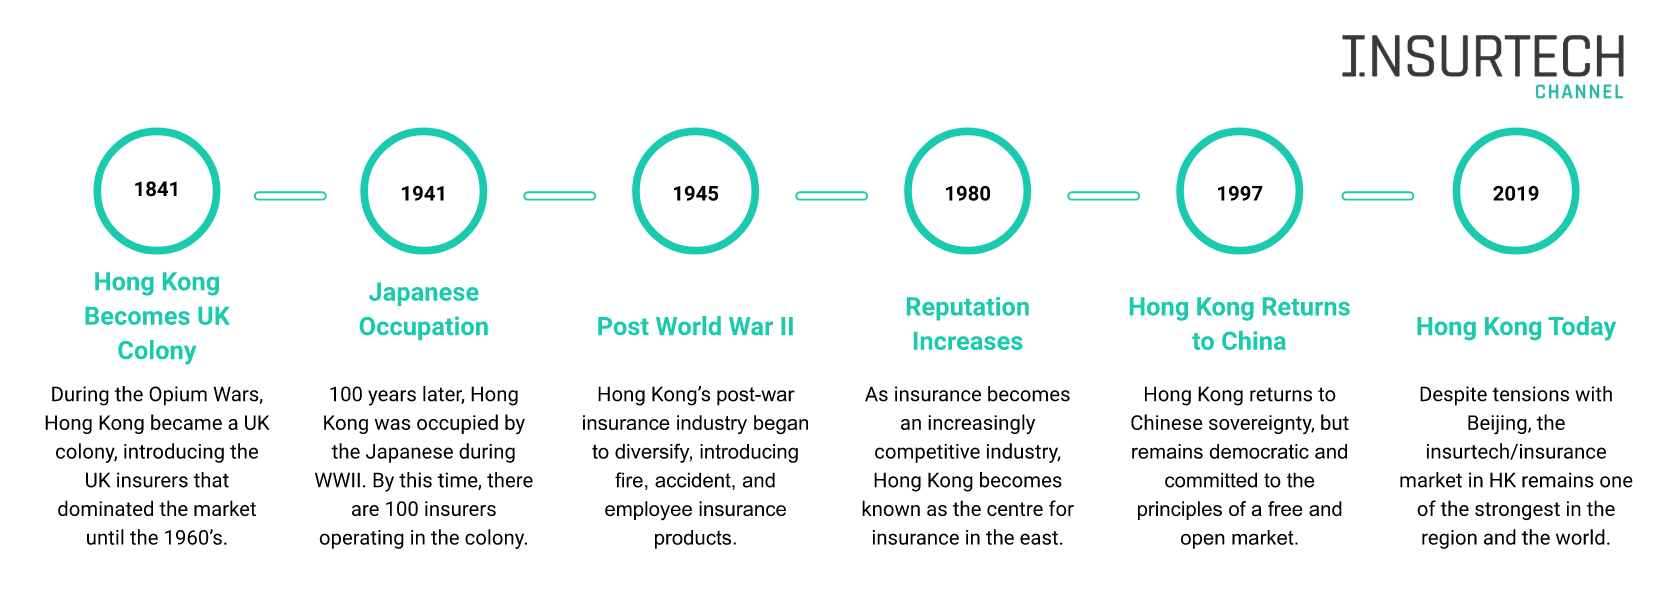 The Insurance And Insurtech Market In Hong Kong